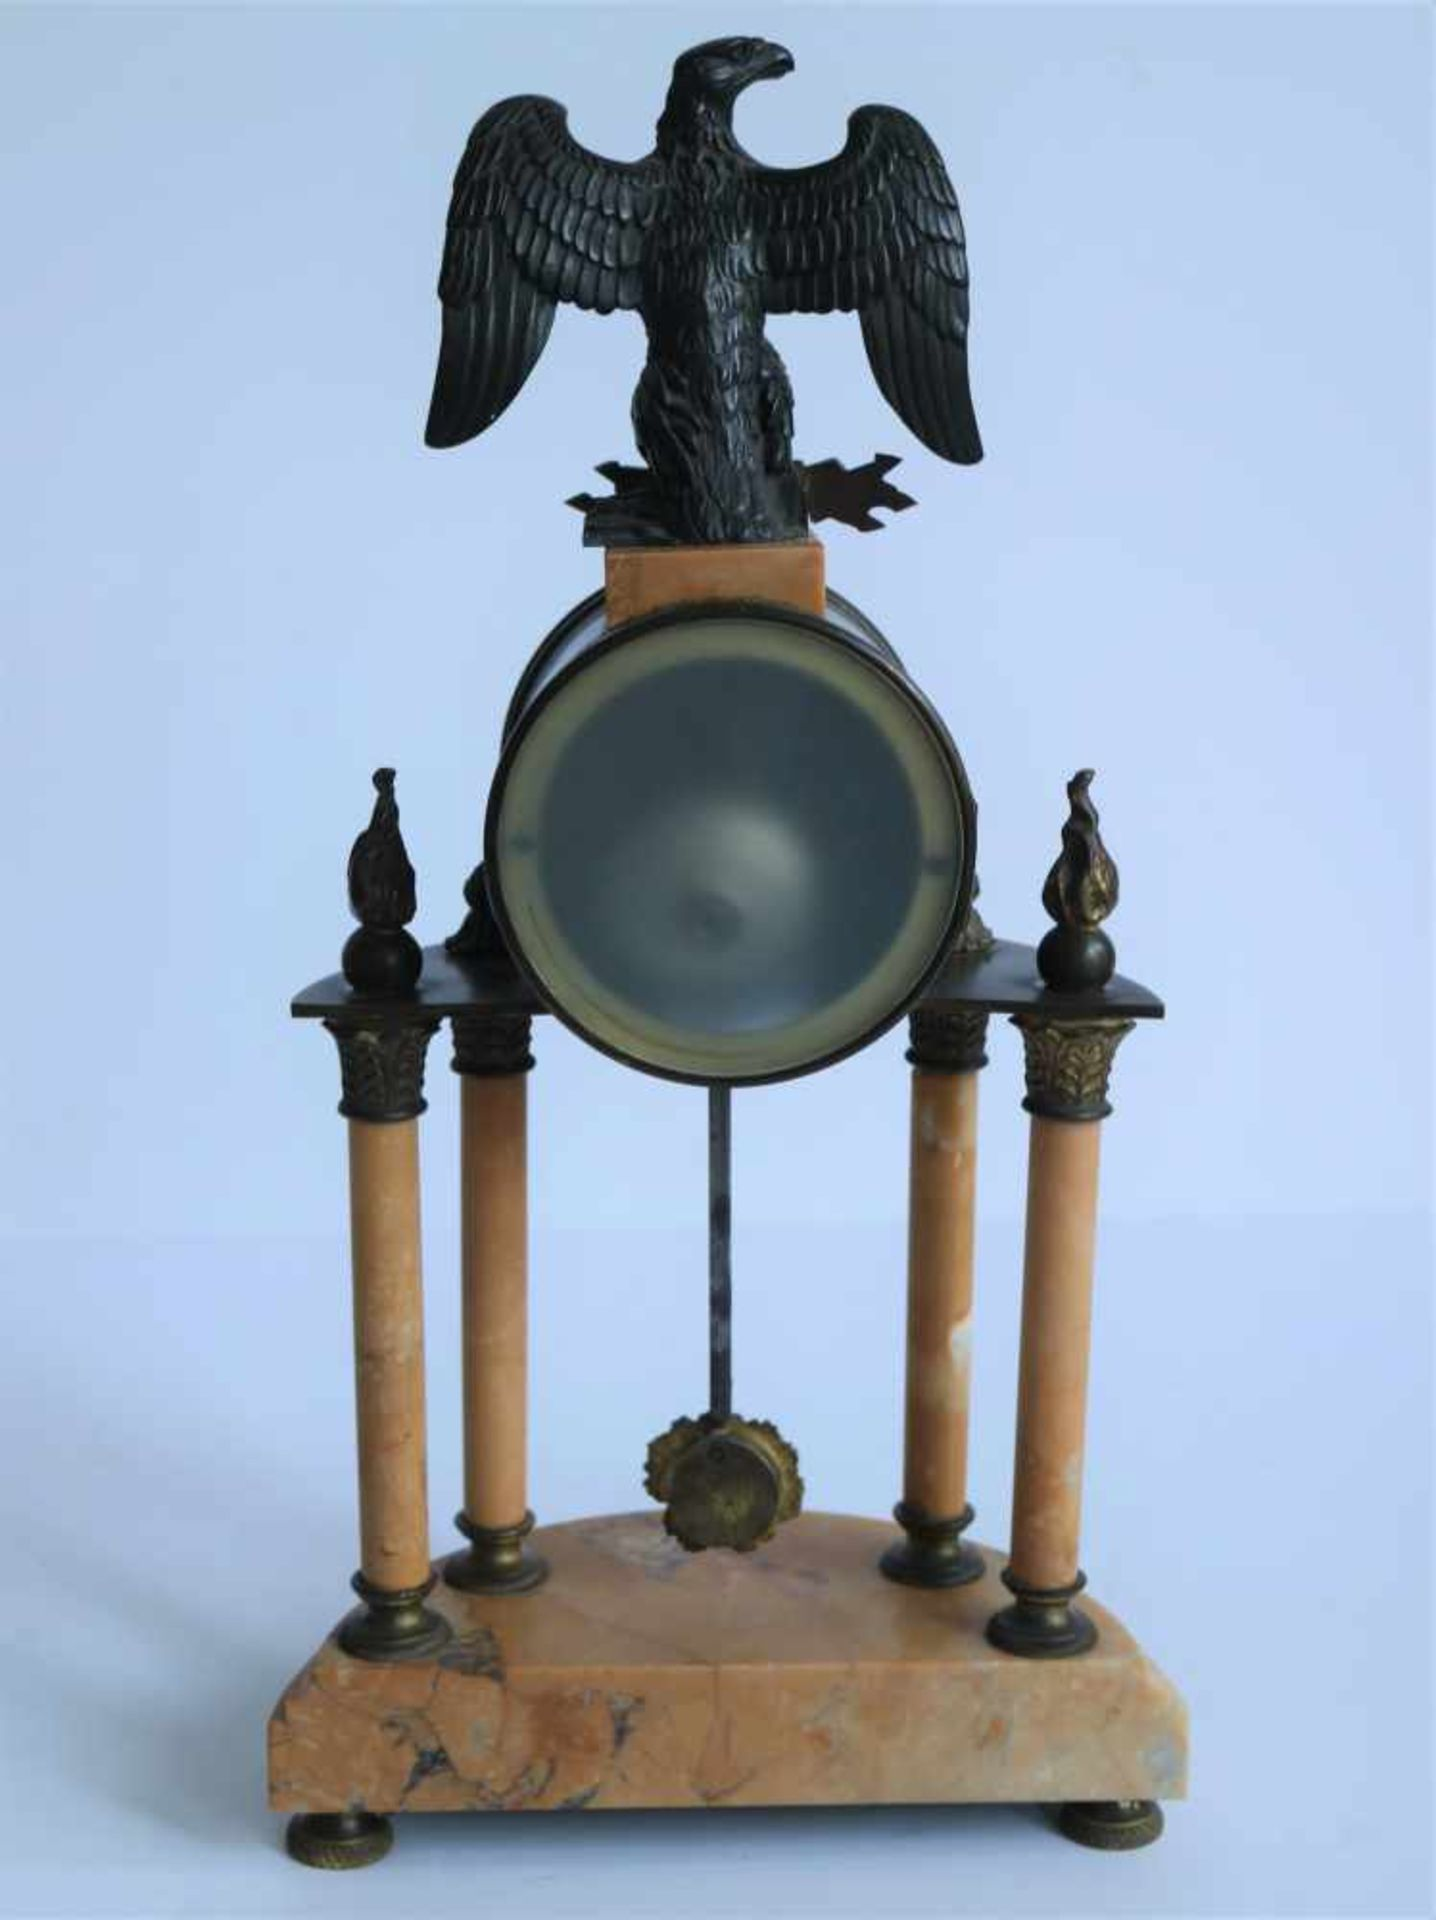 Los 931 - Empire Clock with eagle and Louis XVI elements, 19th century, Paris work sold in Ghent H 41,5 cm